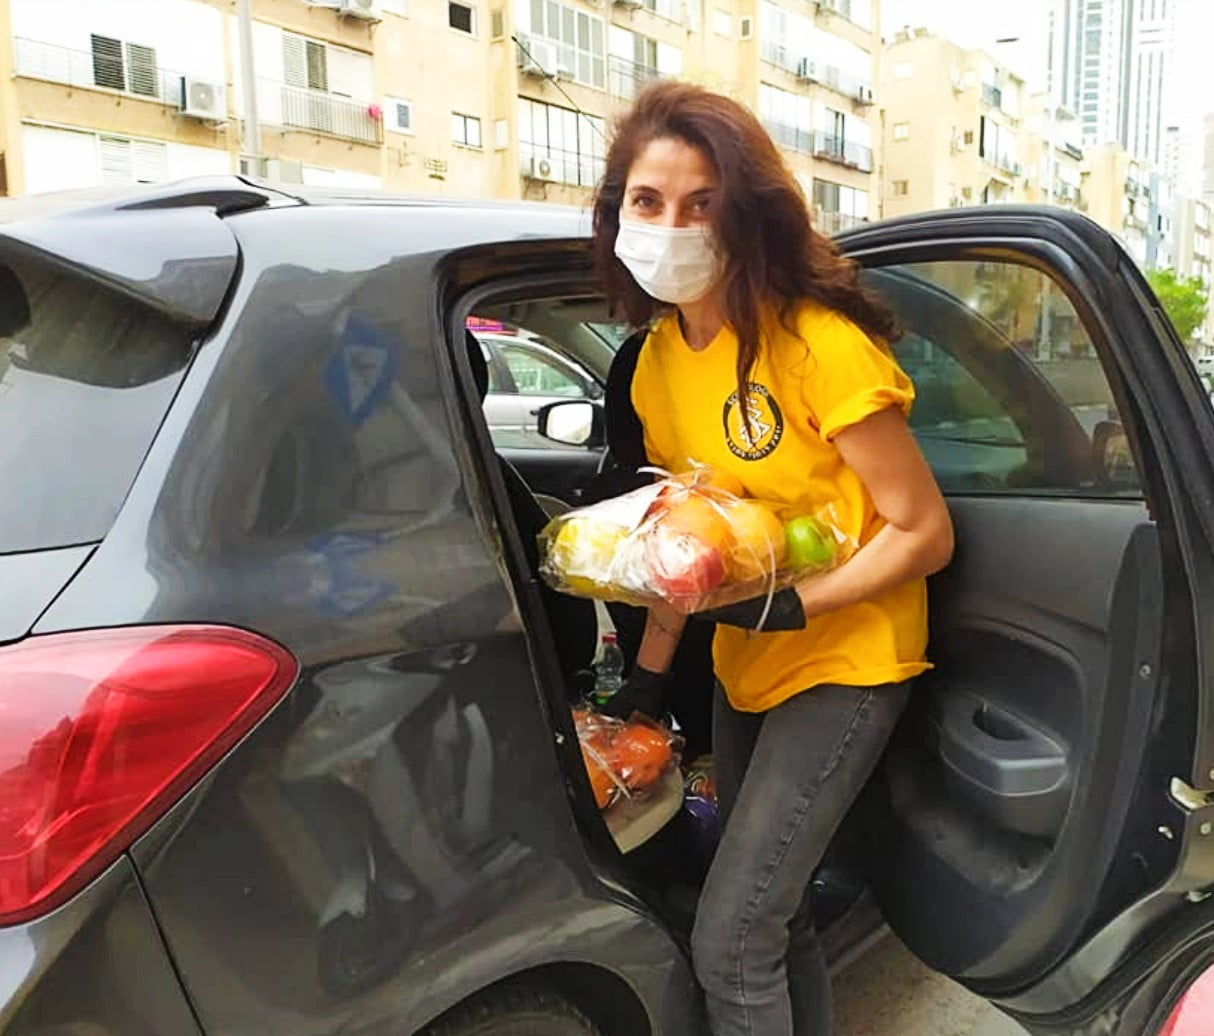 Scientology Volunteers of Tel Aviv: On the Pulse of the Community's Needs Through the Long and Debilitating Pandemic